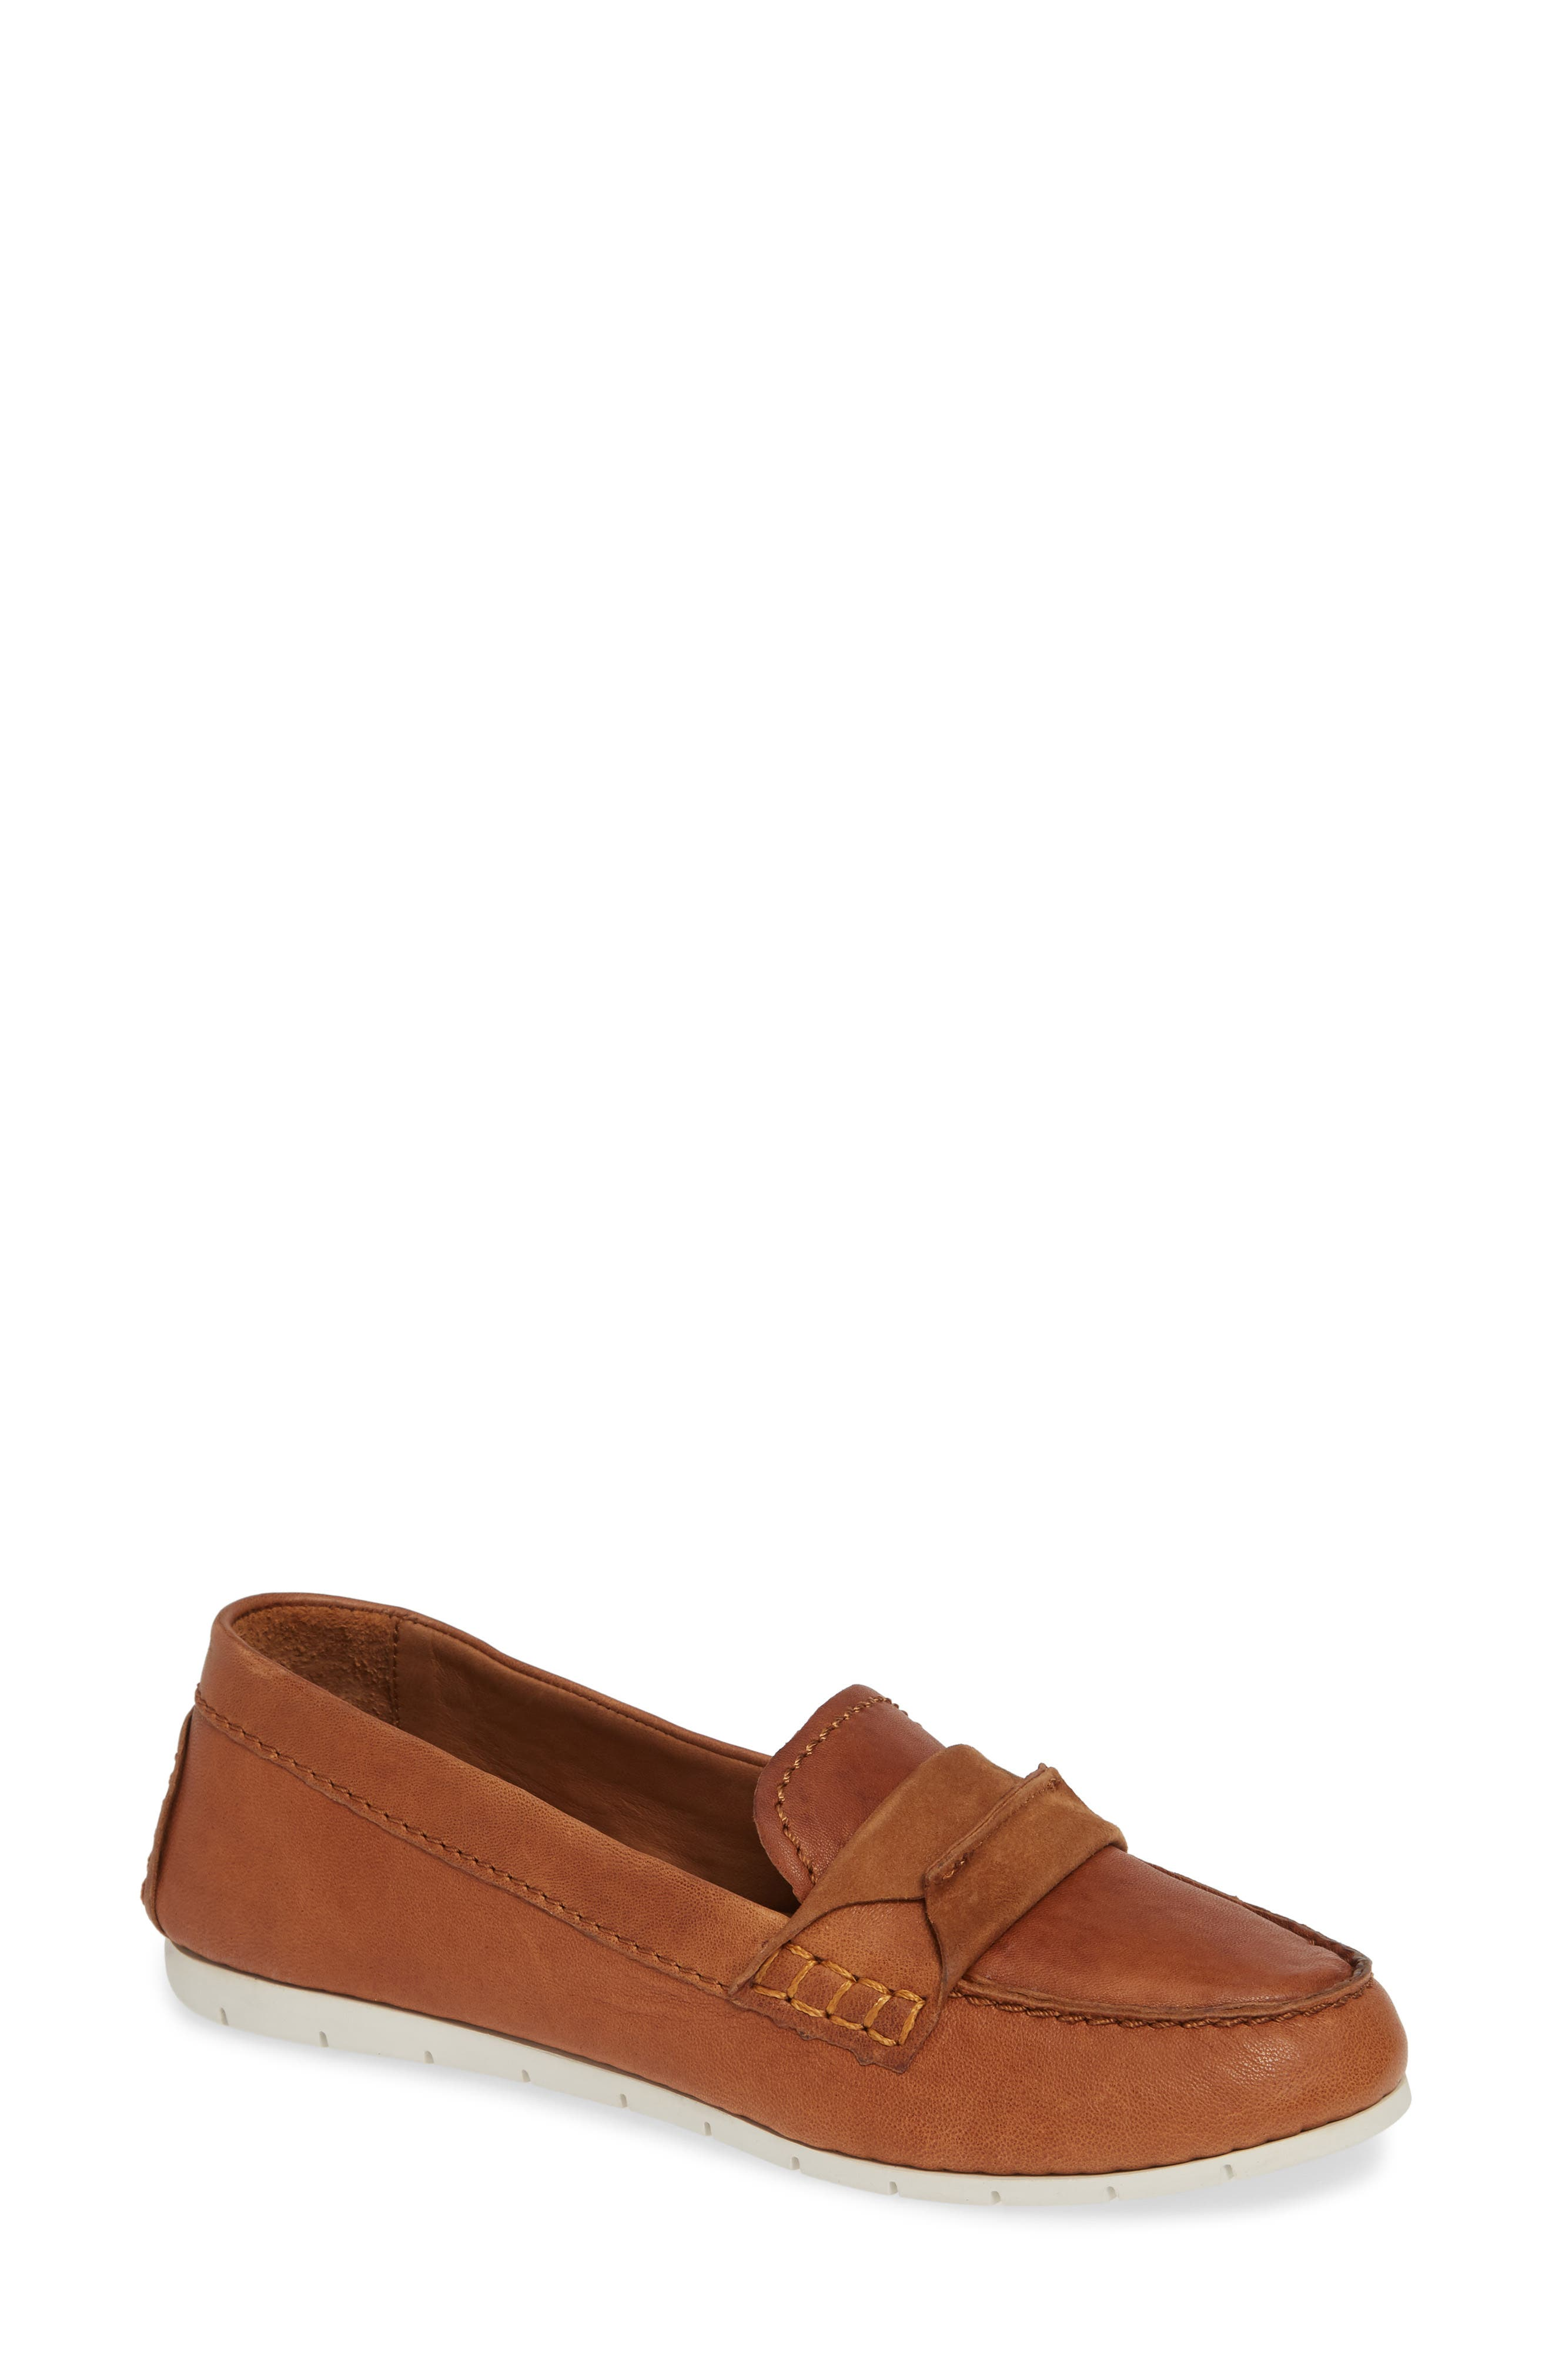 Frye Sedona Top Seam Moccasin Loafer- Brown